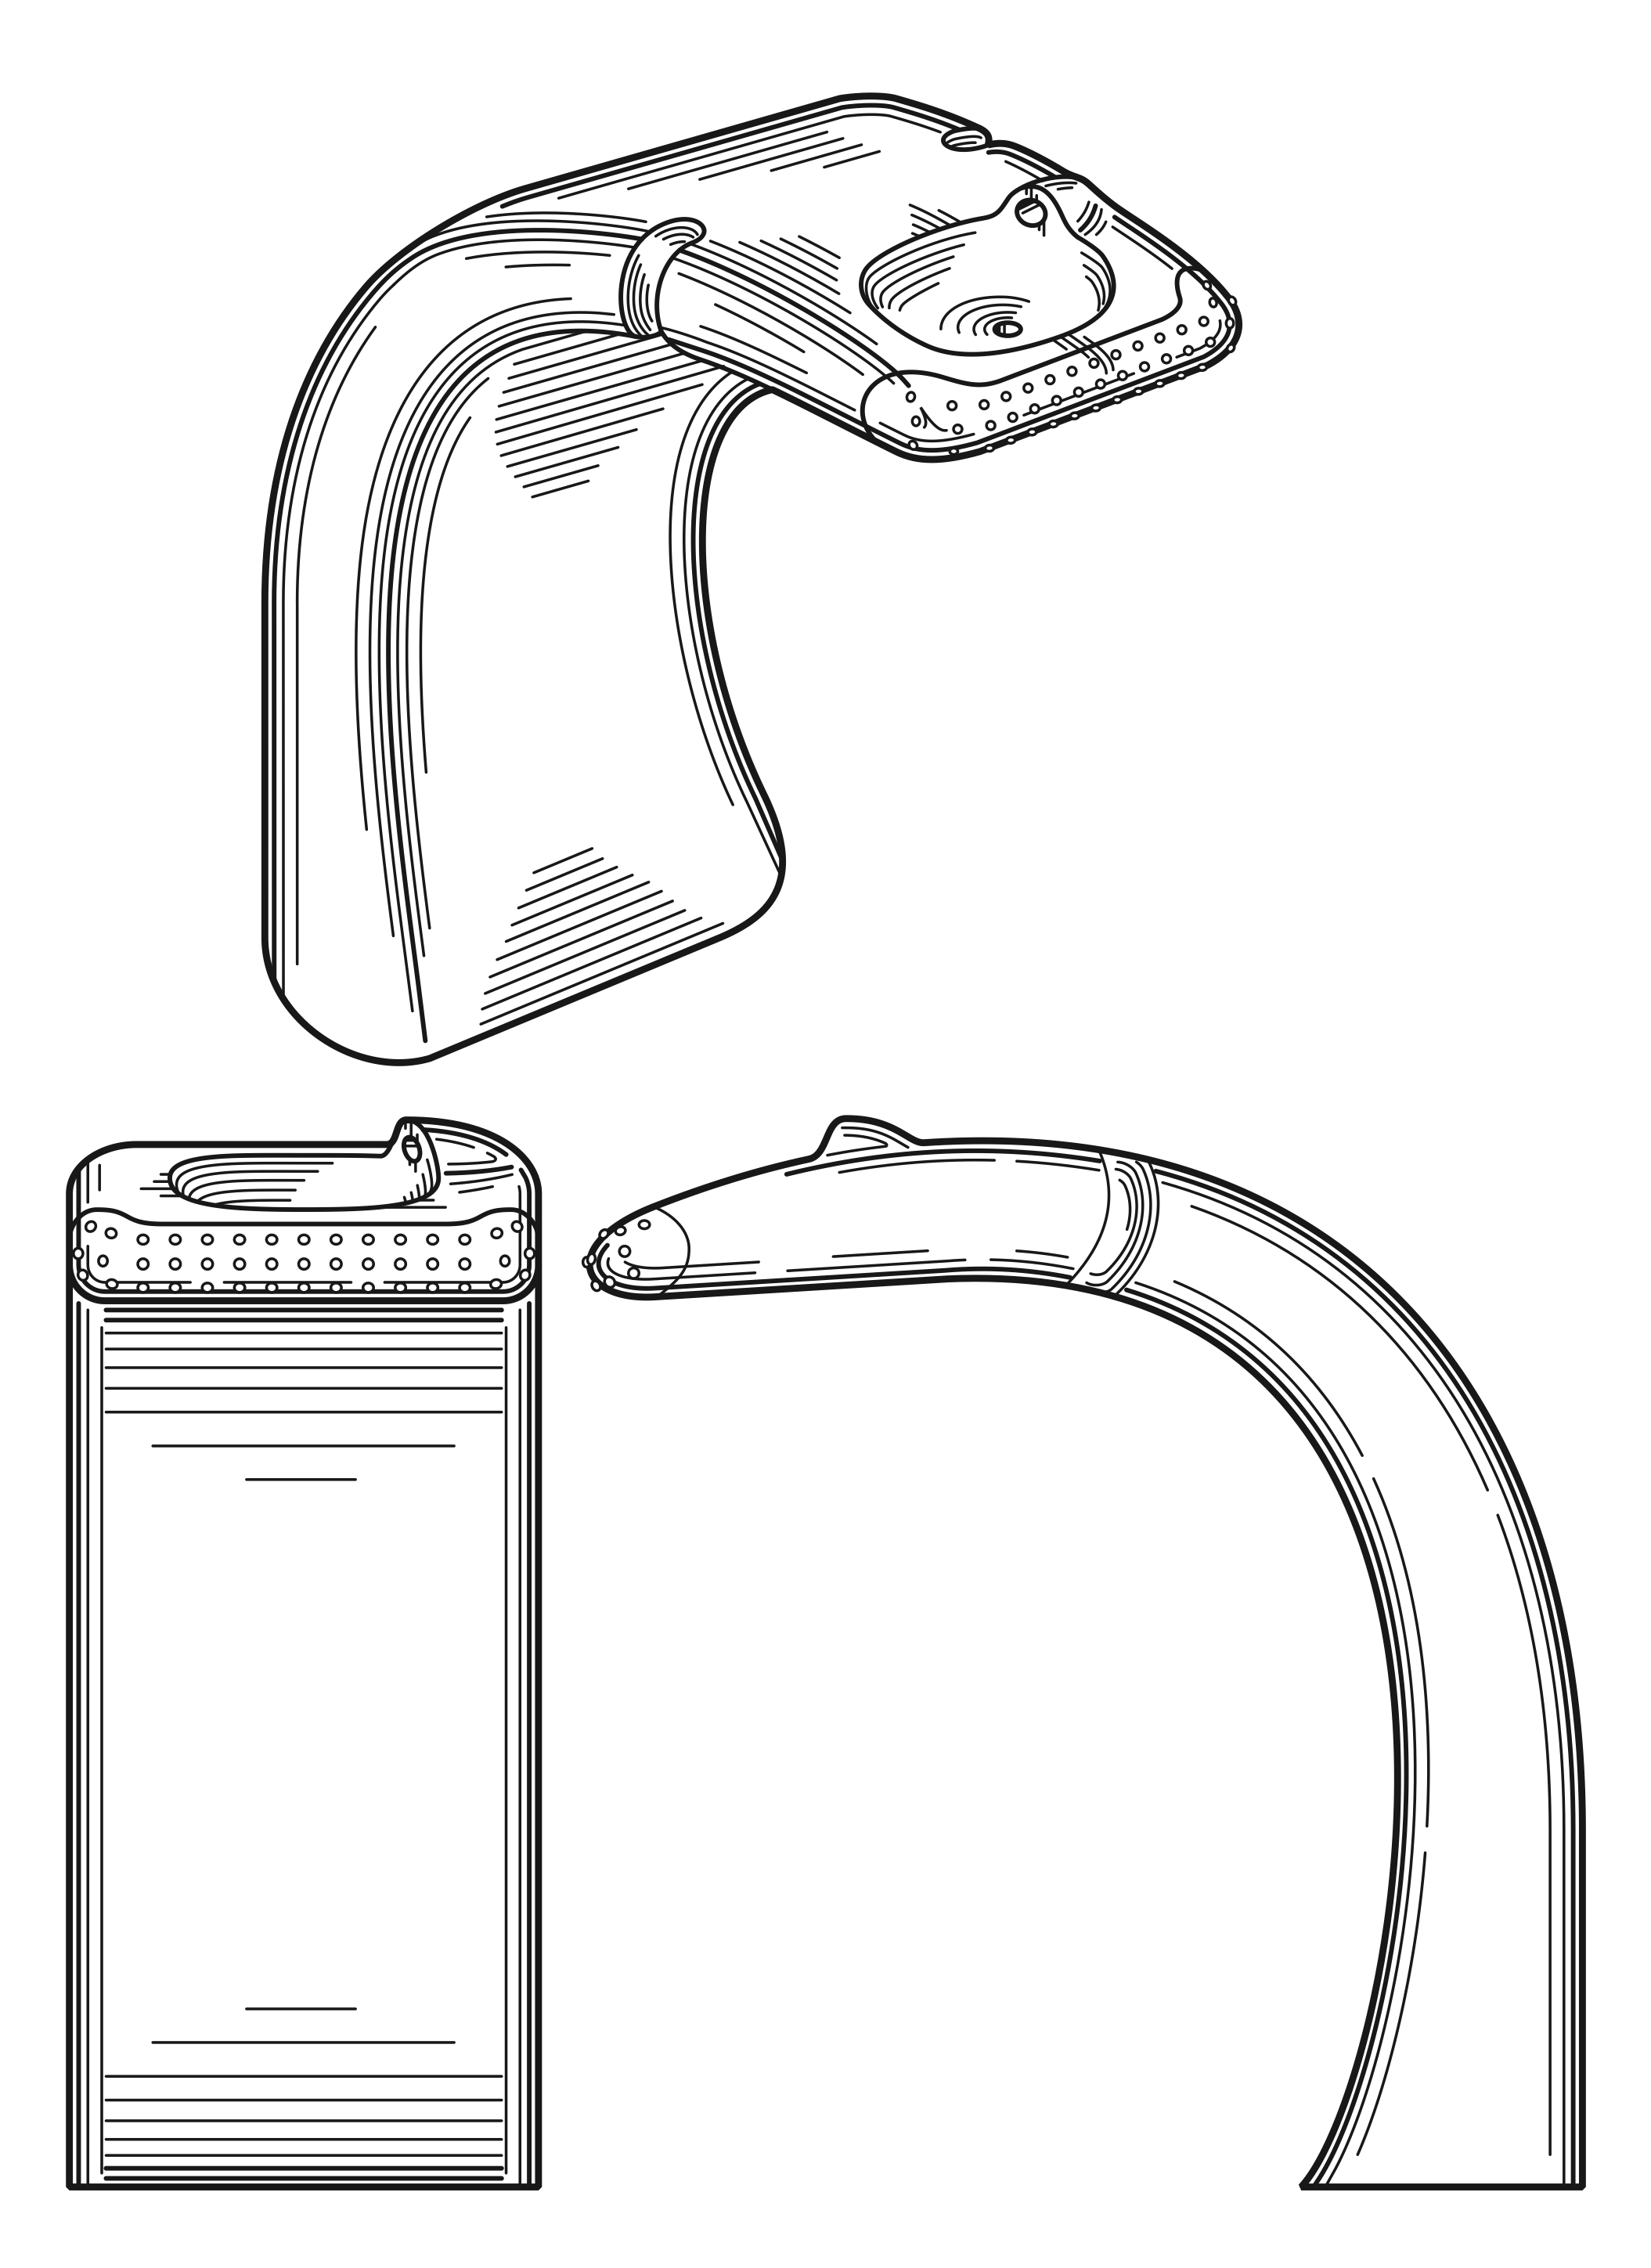 33_ptiserviceco_patent_drawing_design.png